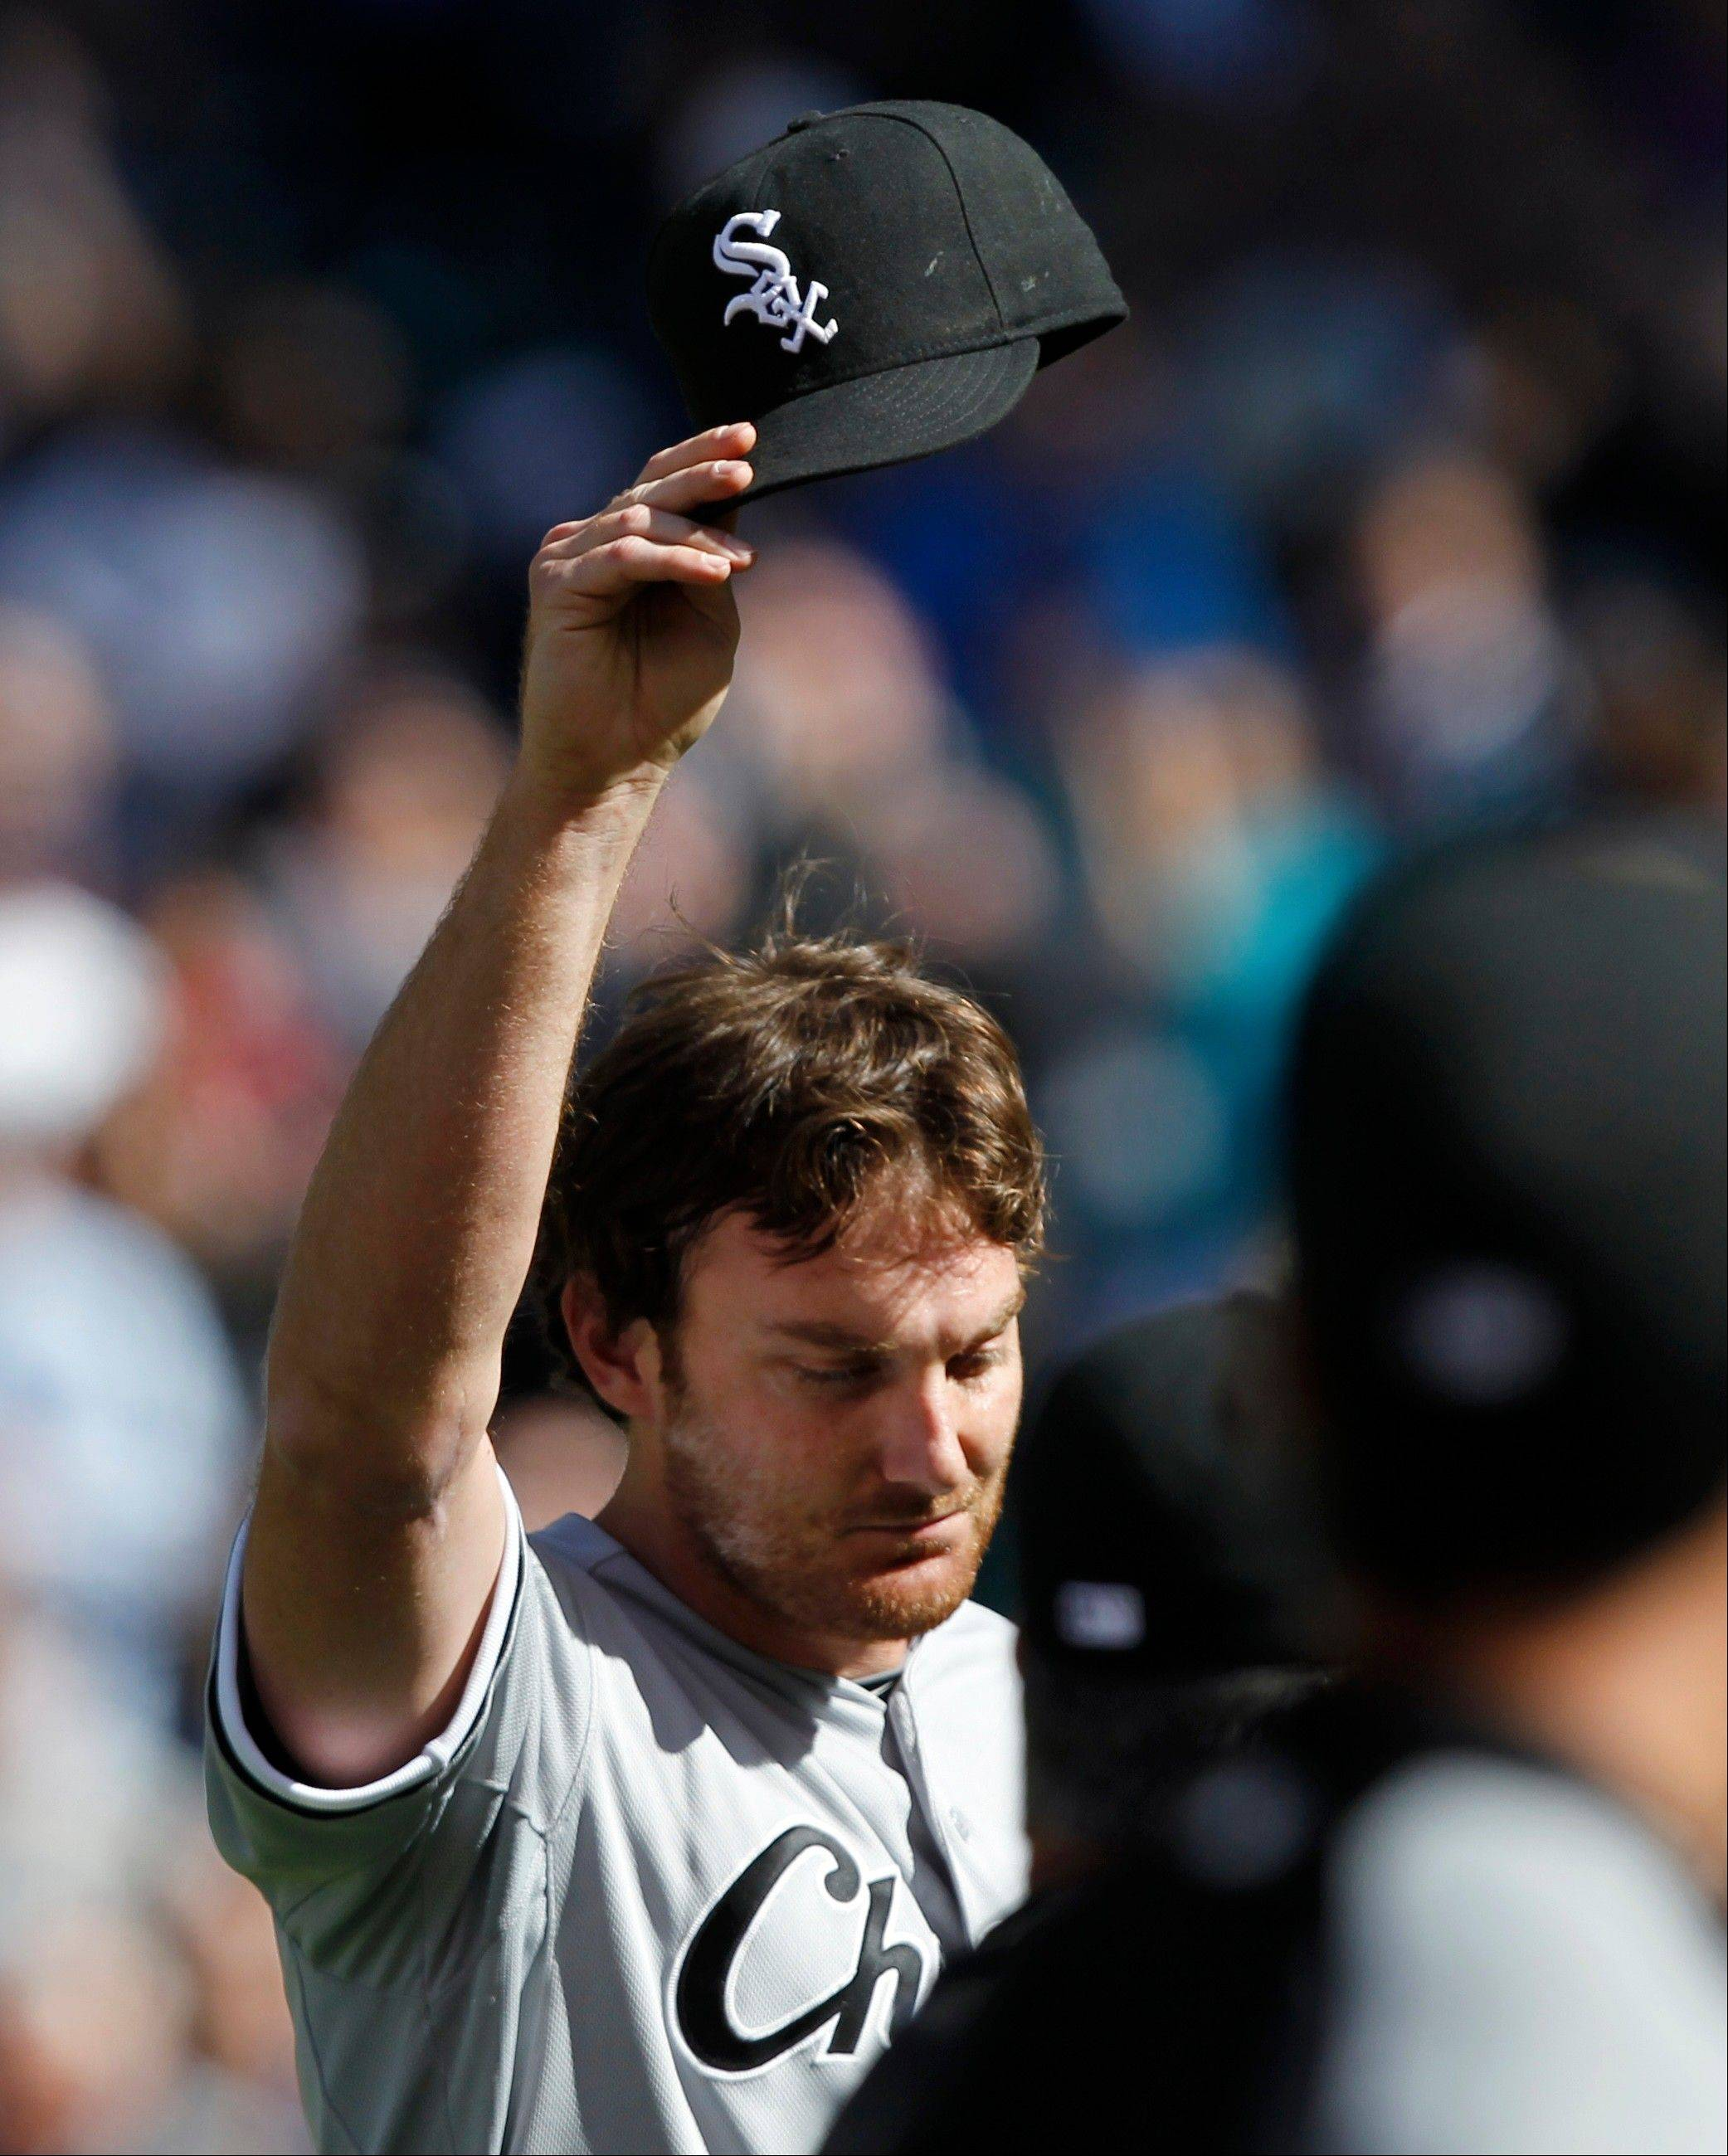 White Sox starting pitcher Phil Humber waves his cap Saturday after pitching a perfect game against the Seattle Mariners in Seattle. The White Sox won 4-0.